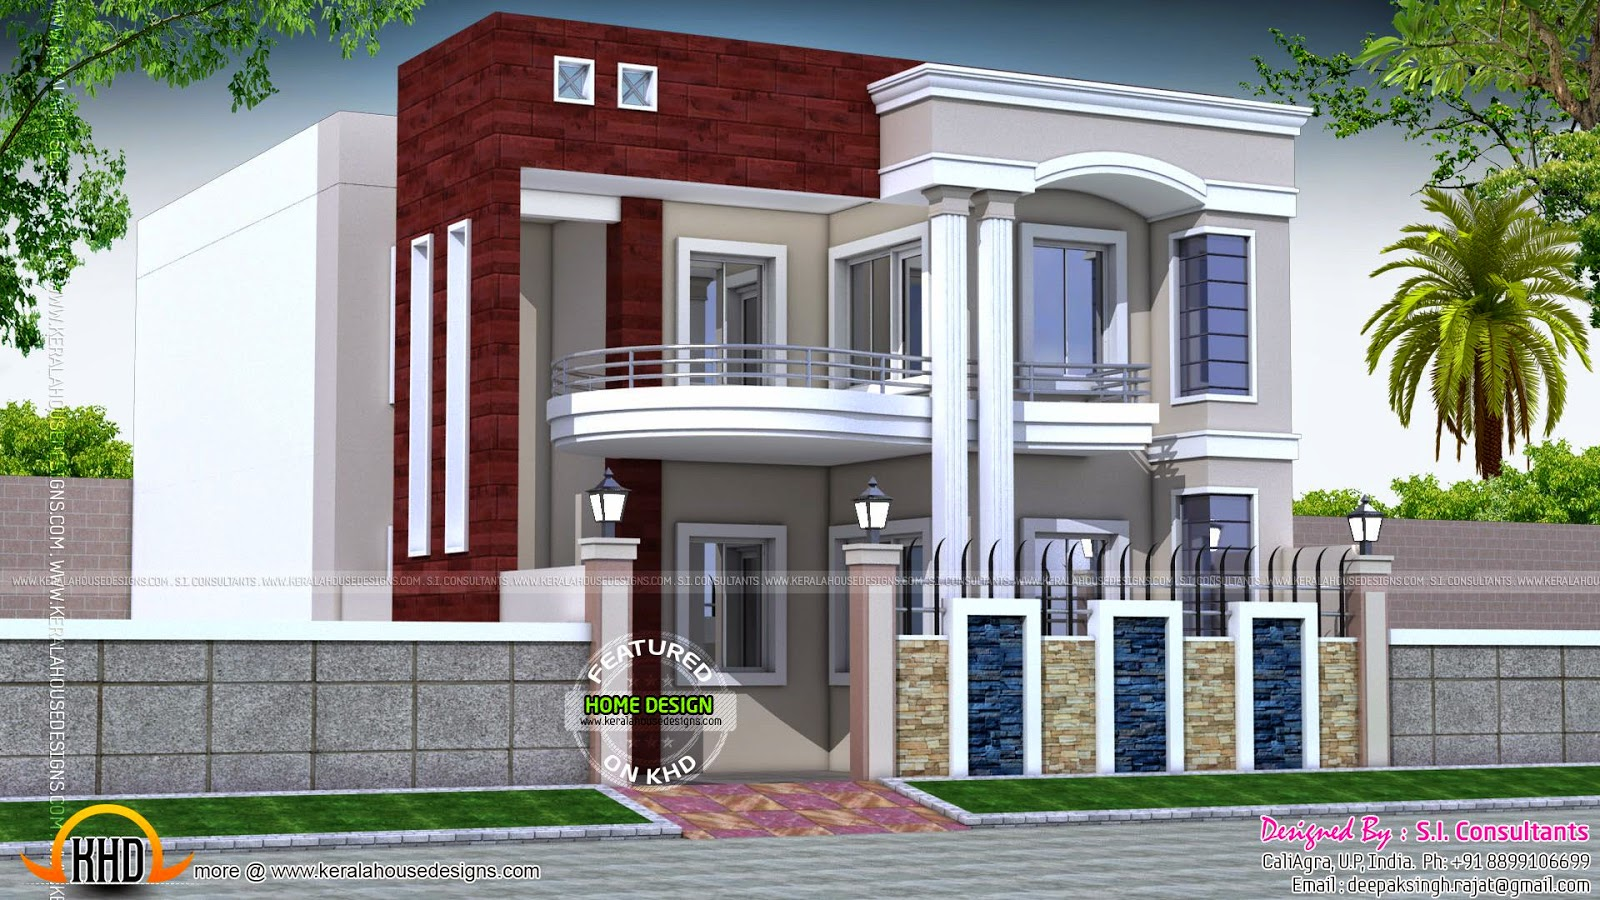 House design in north india kerala home design and floor for Indian house designs and floor plans